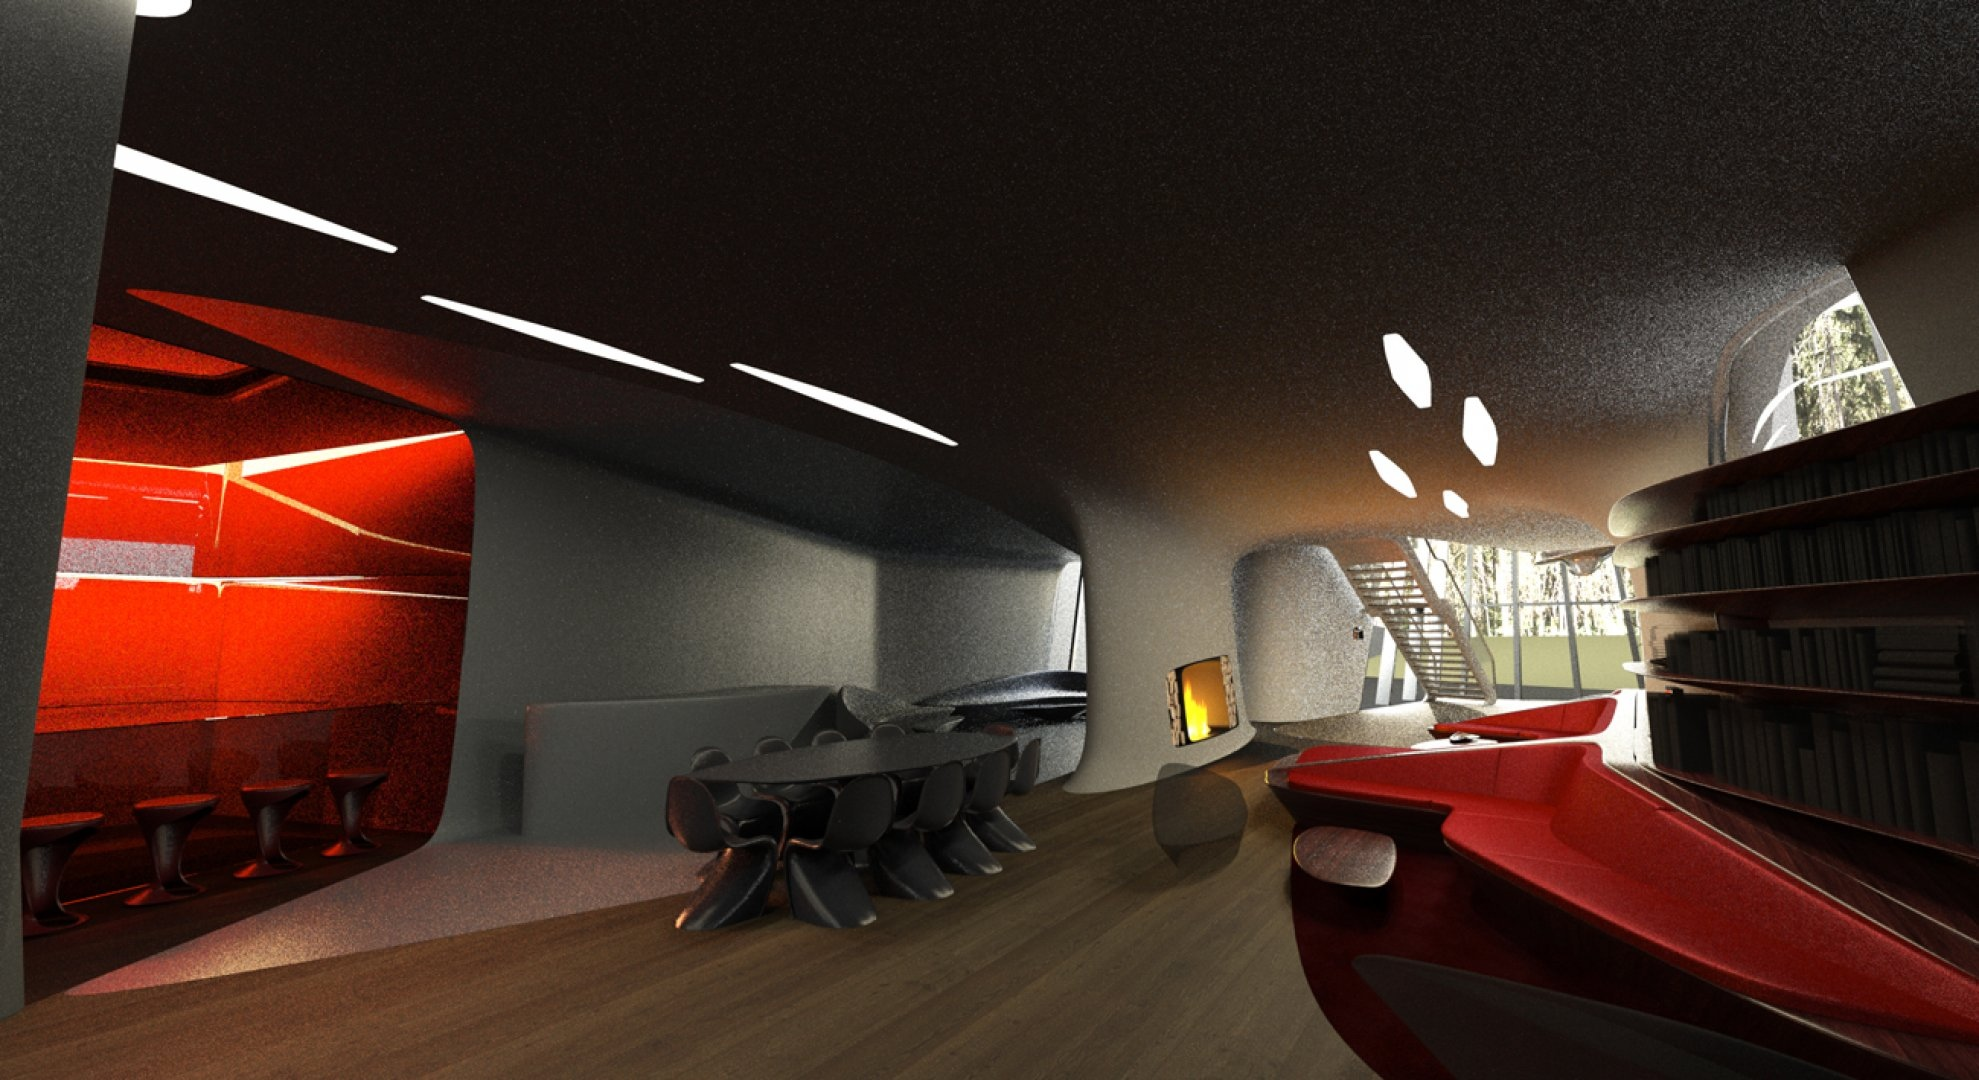 Space age interior interior design ideas for 4 space interior design